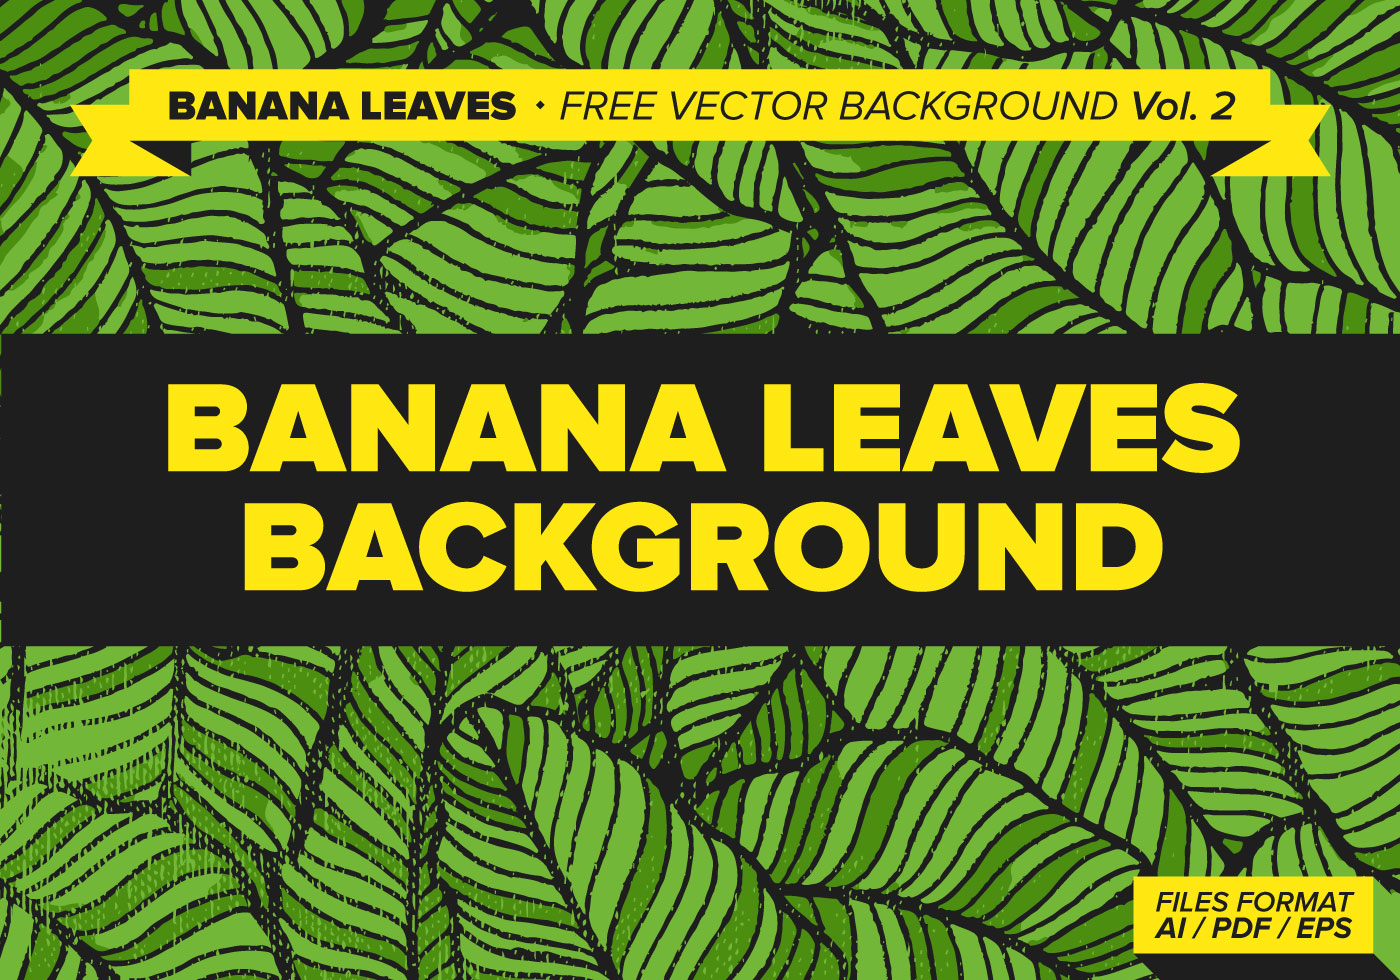 banana leaves free vector background vol  2